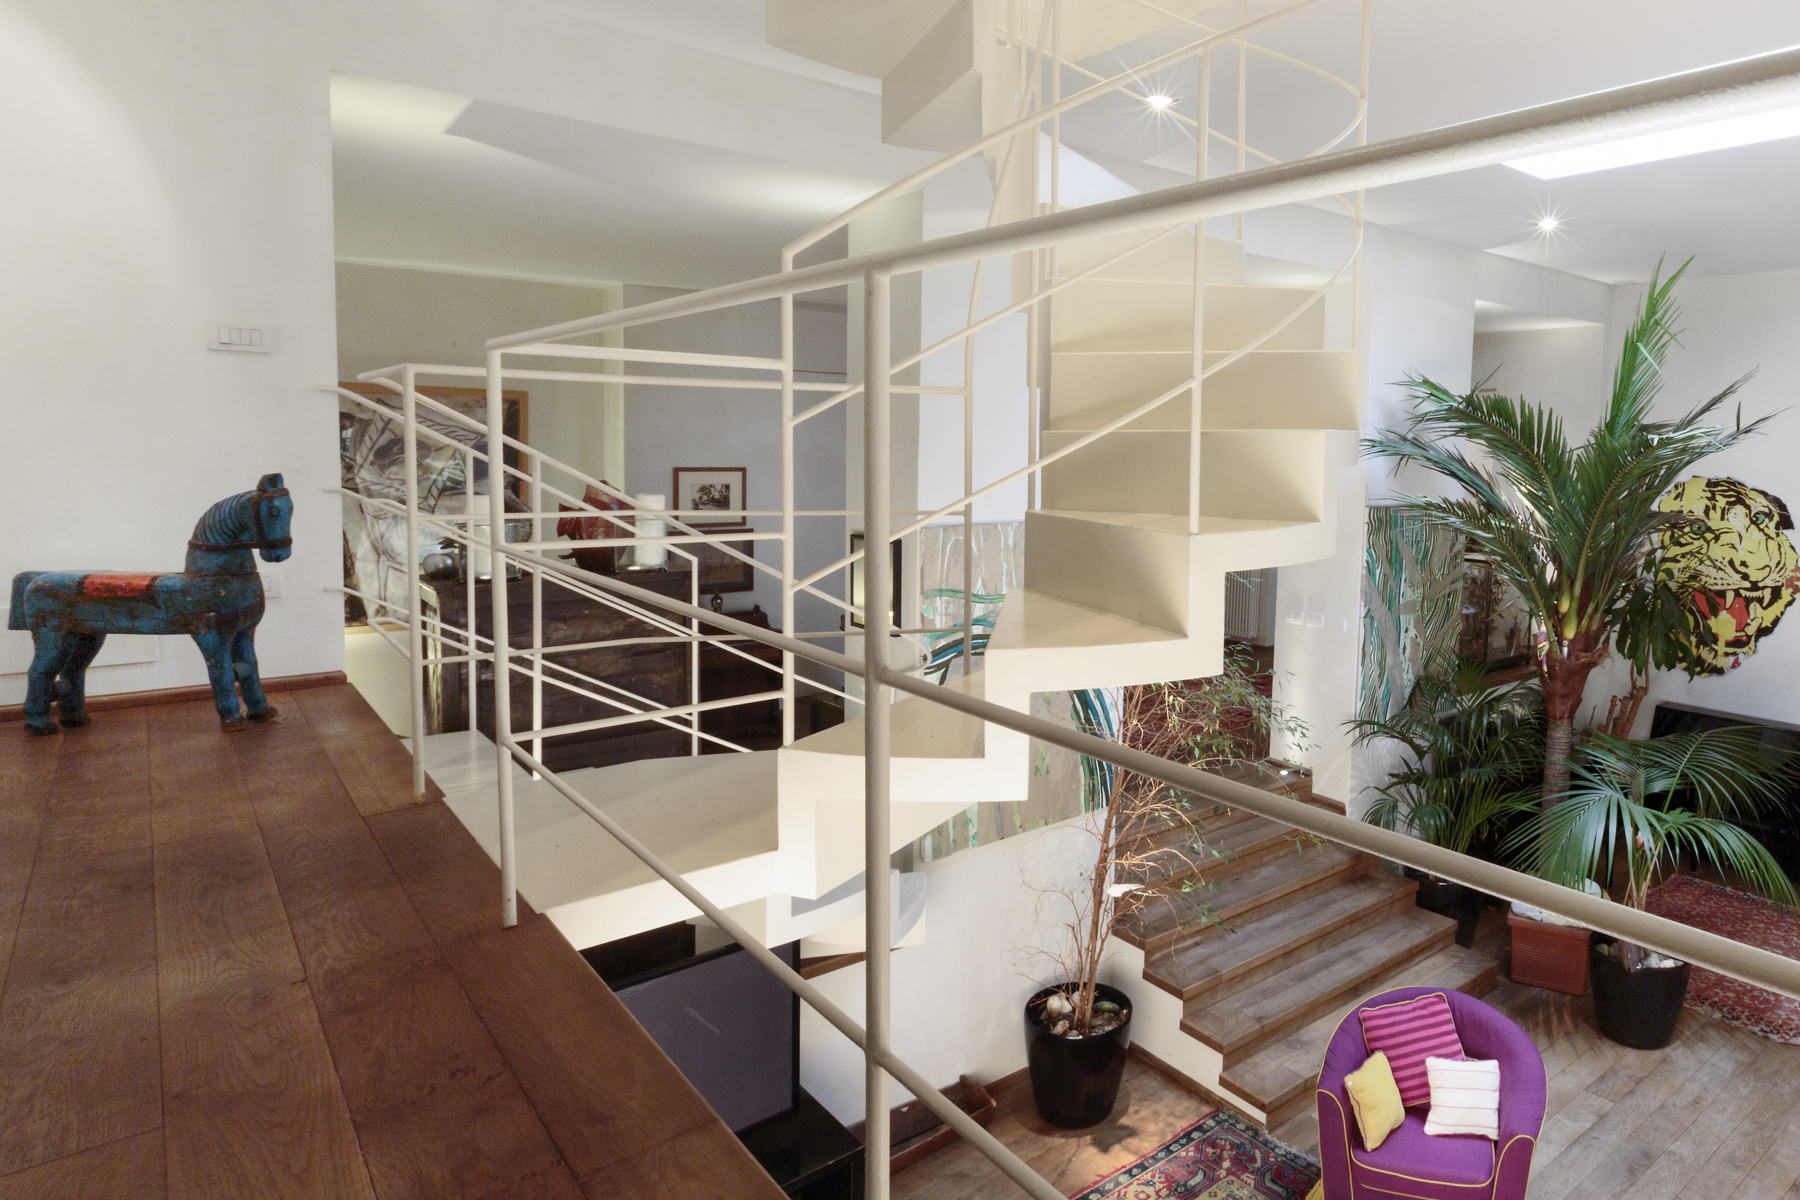 Additional photo for property listing at Charming apartment with terrace Via Ariberto Milano, Milan 20100 Italie